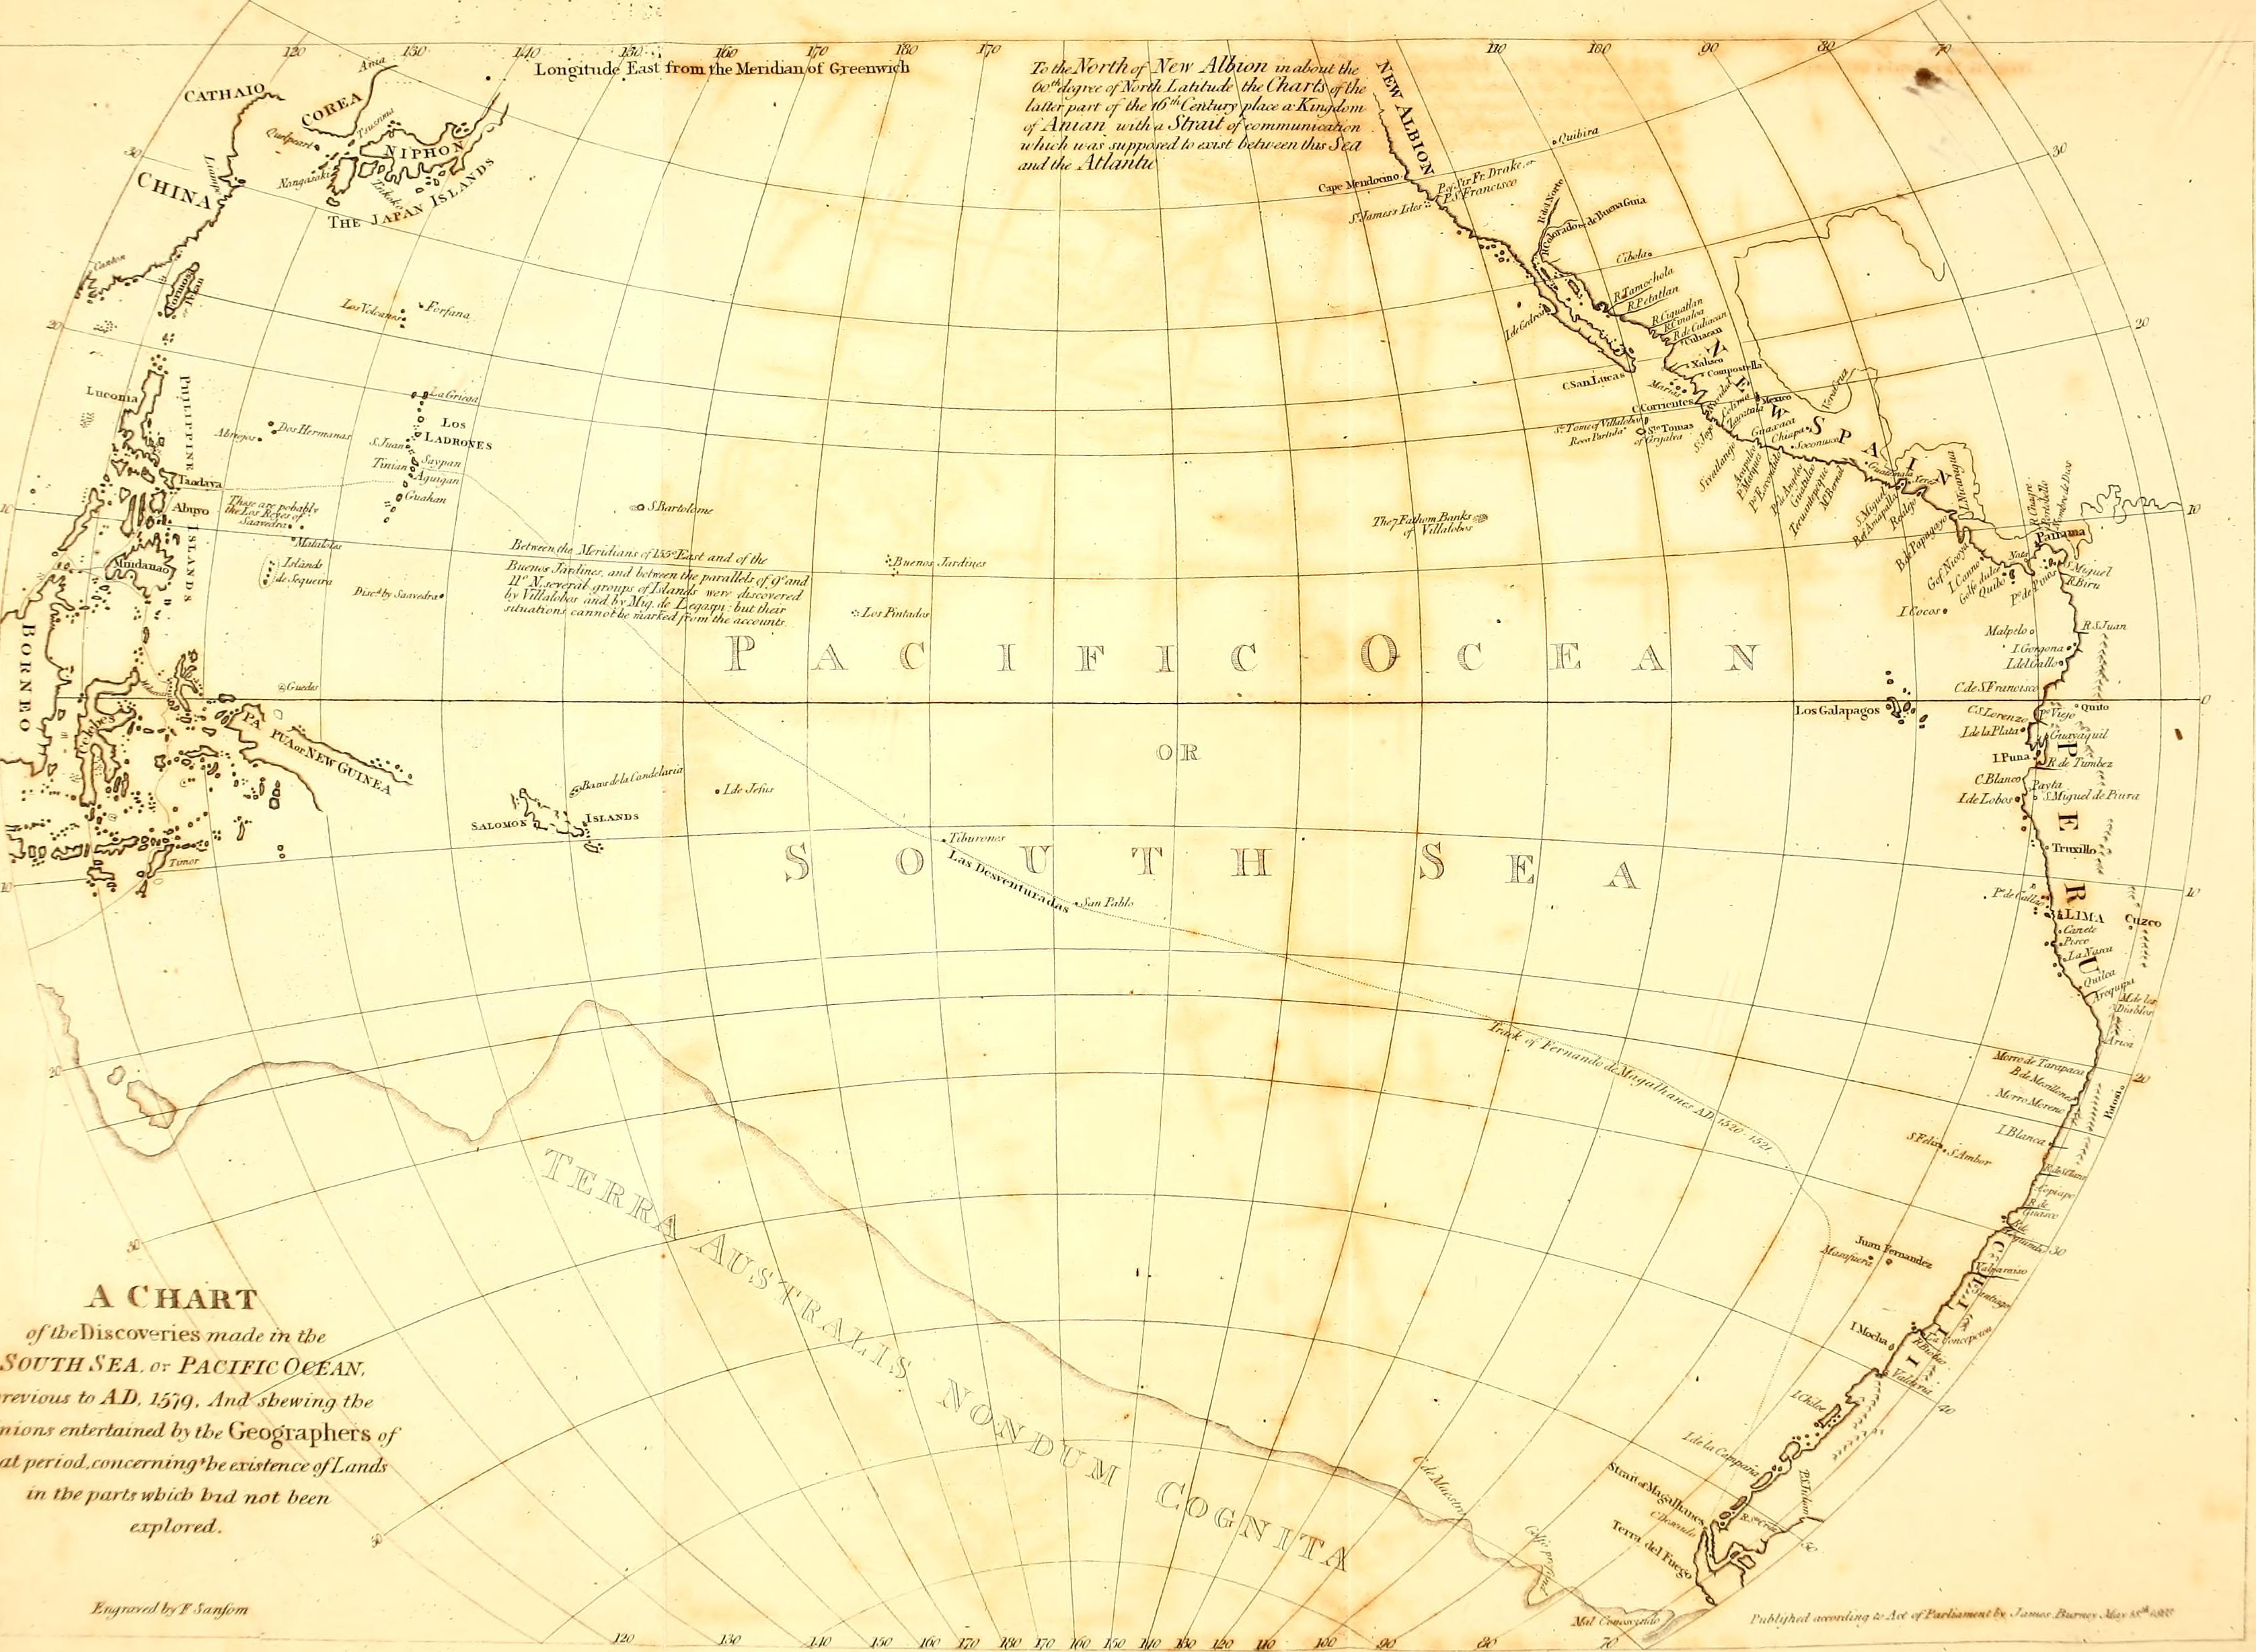 91cf88565 File A chronological history of the discoveries in the South Sea or Pacific  Ocean  illustrated with charts (1803) (14598126759).jpg